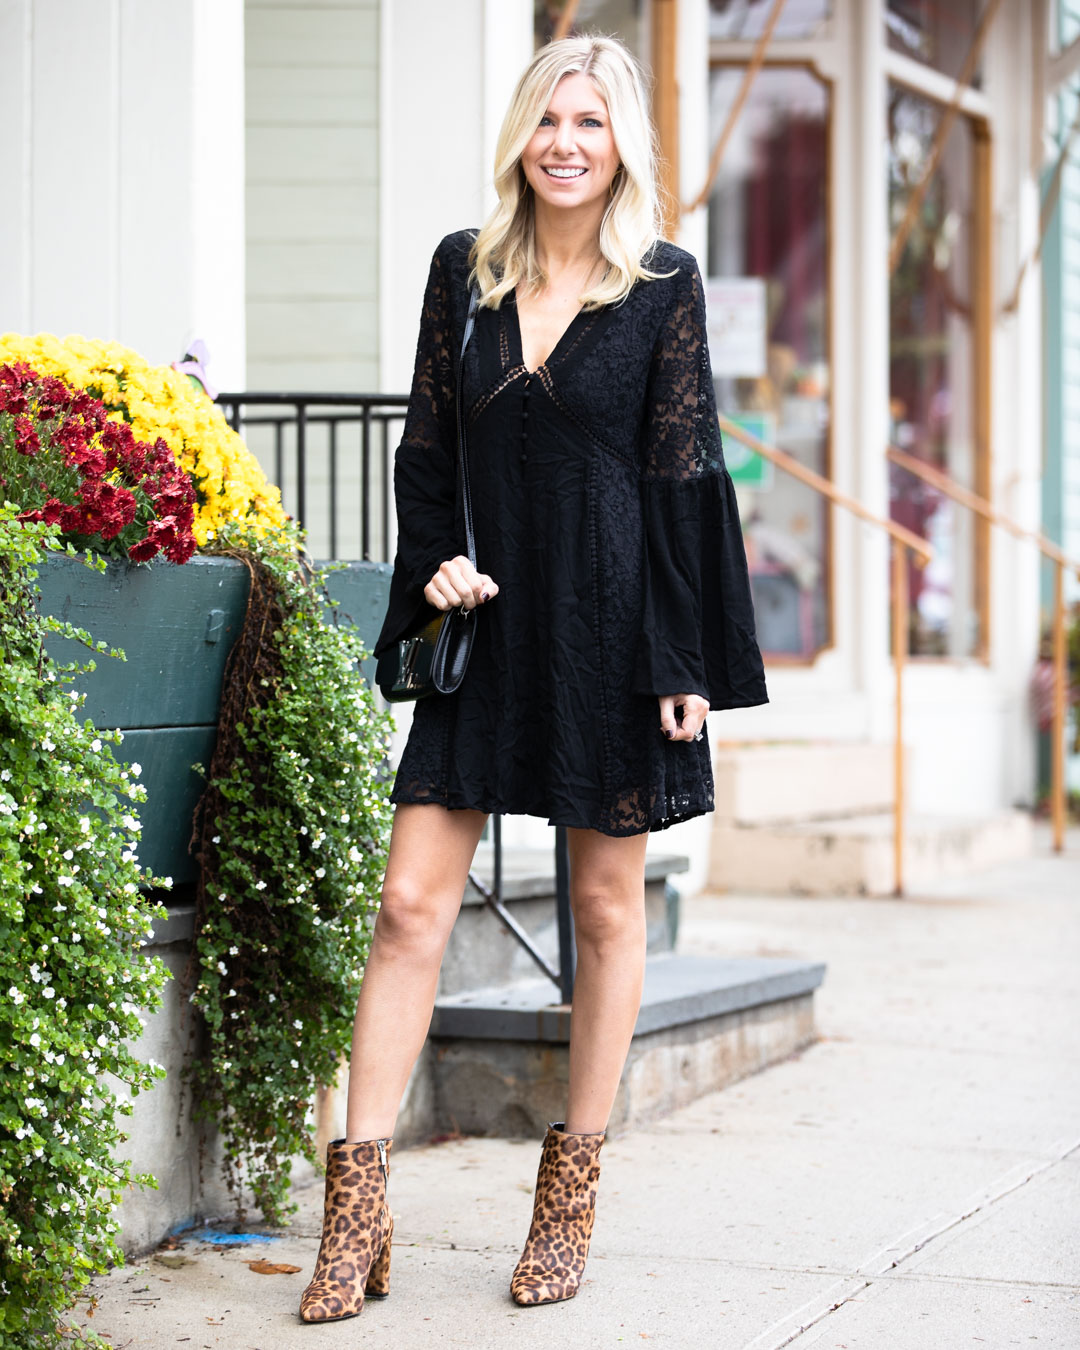 Pink Lily Boutique Lace Dress & Leopard Booties